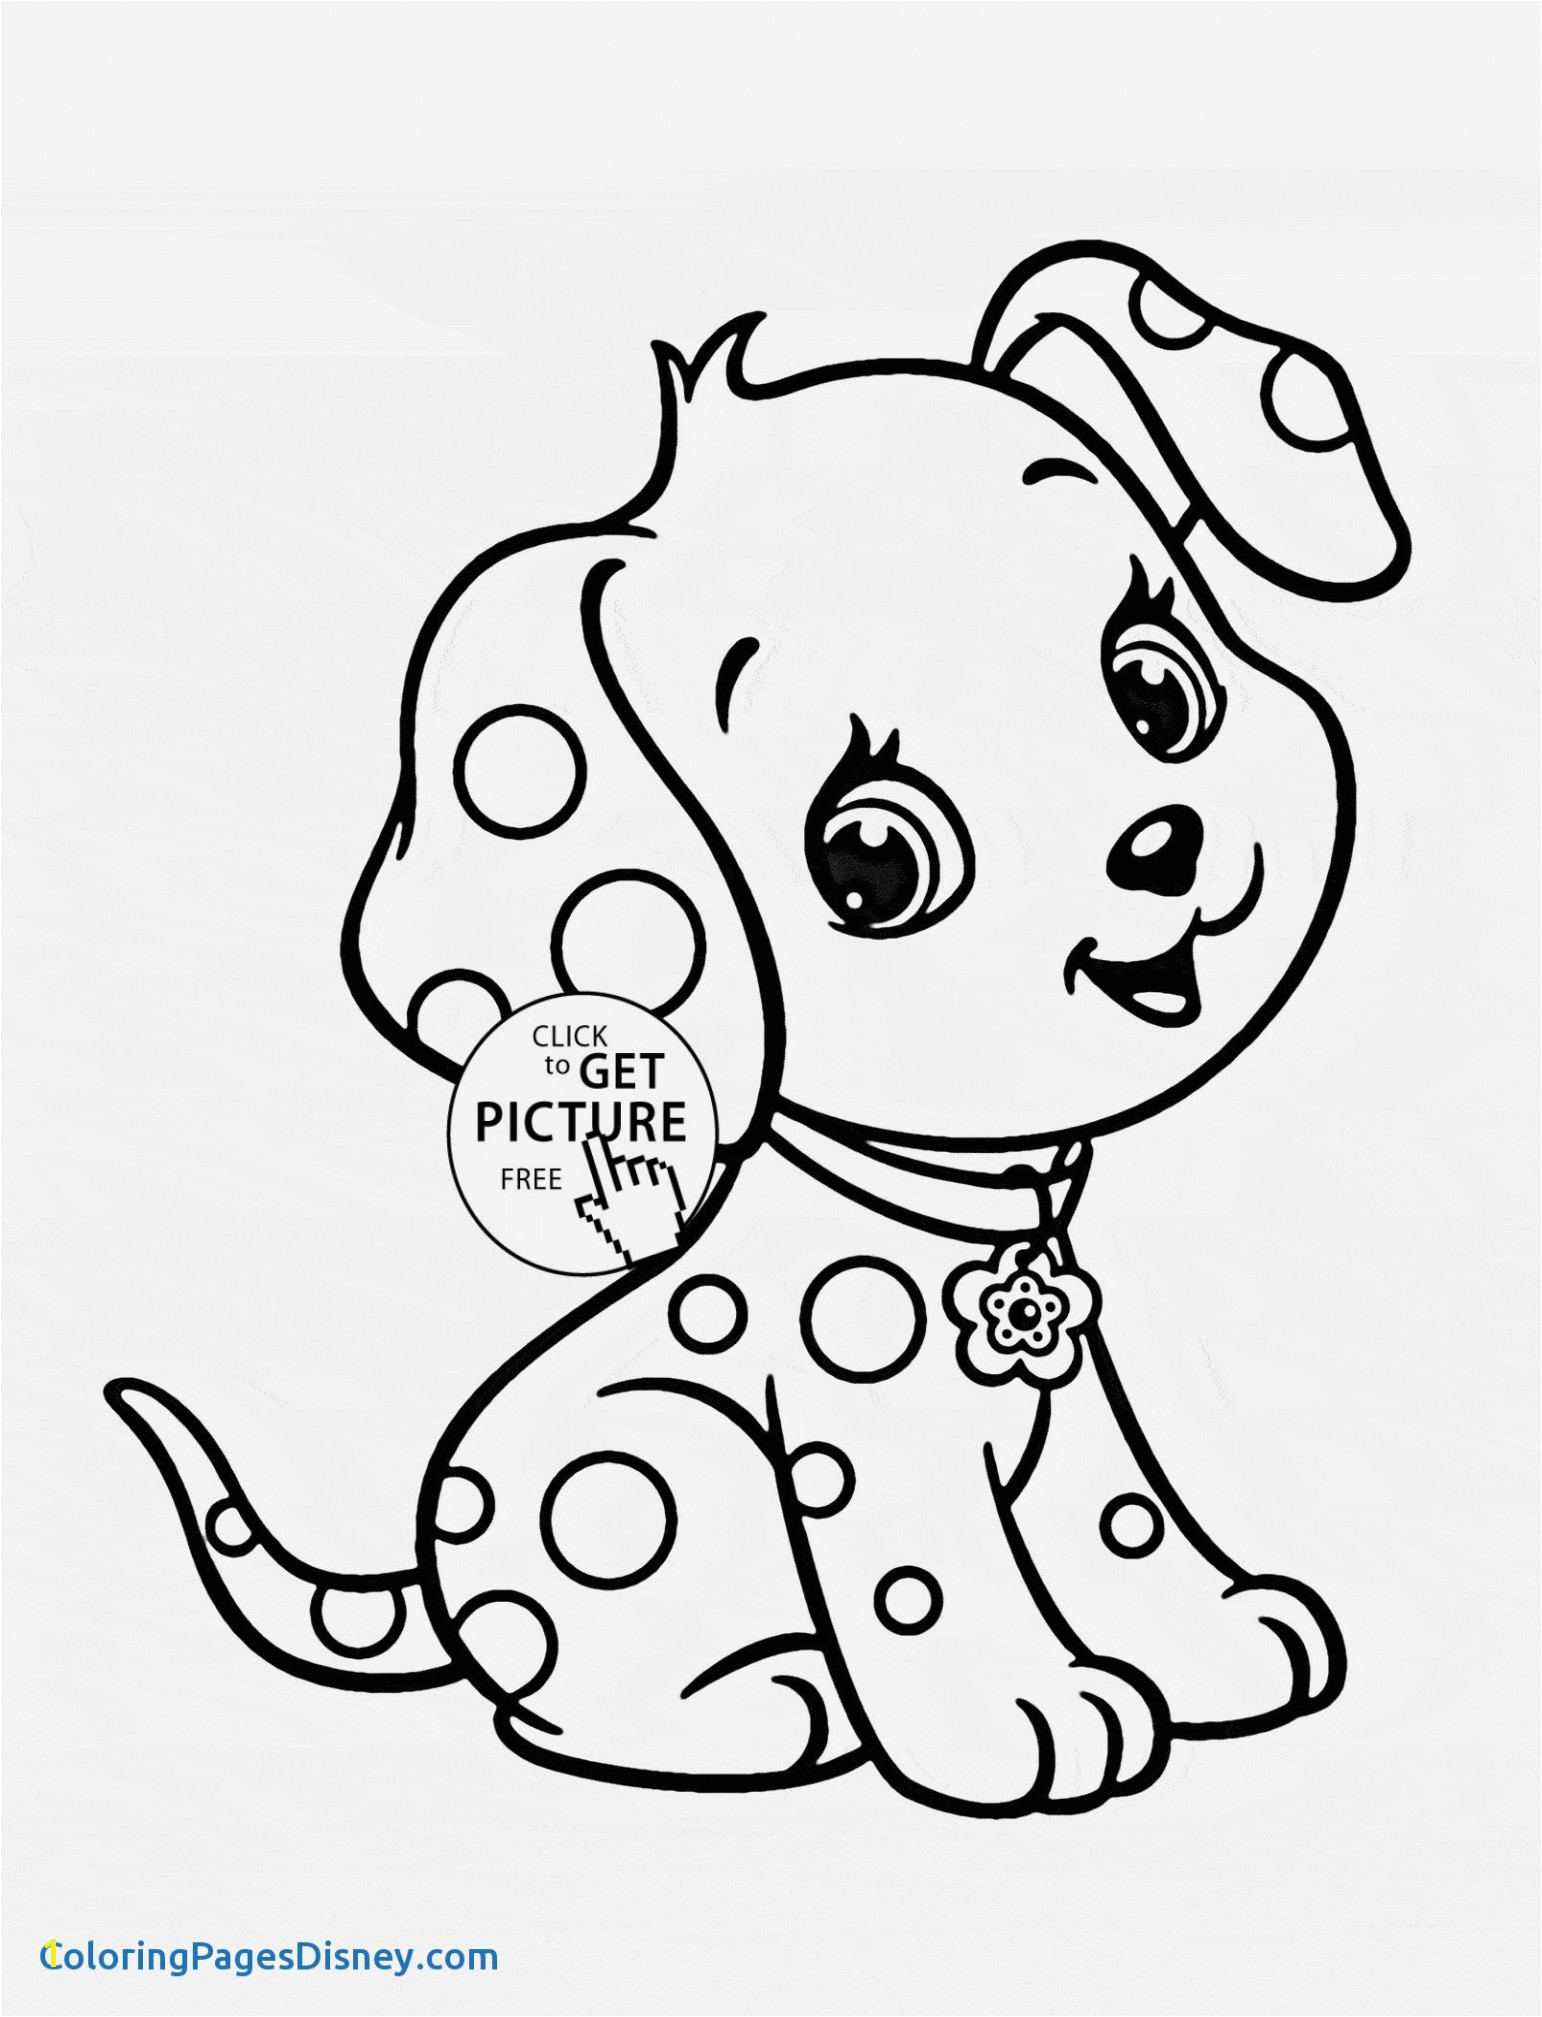 Free Lalaloopsy Coloring Pages Cheetah Coloring Pages Free Coloring Pages Mountains Beautiful Printable Free Printable Coloring